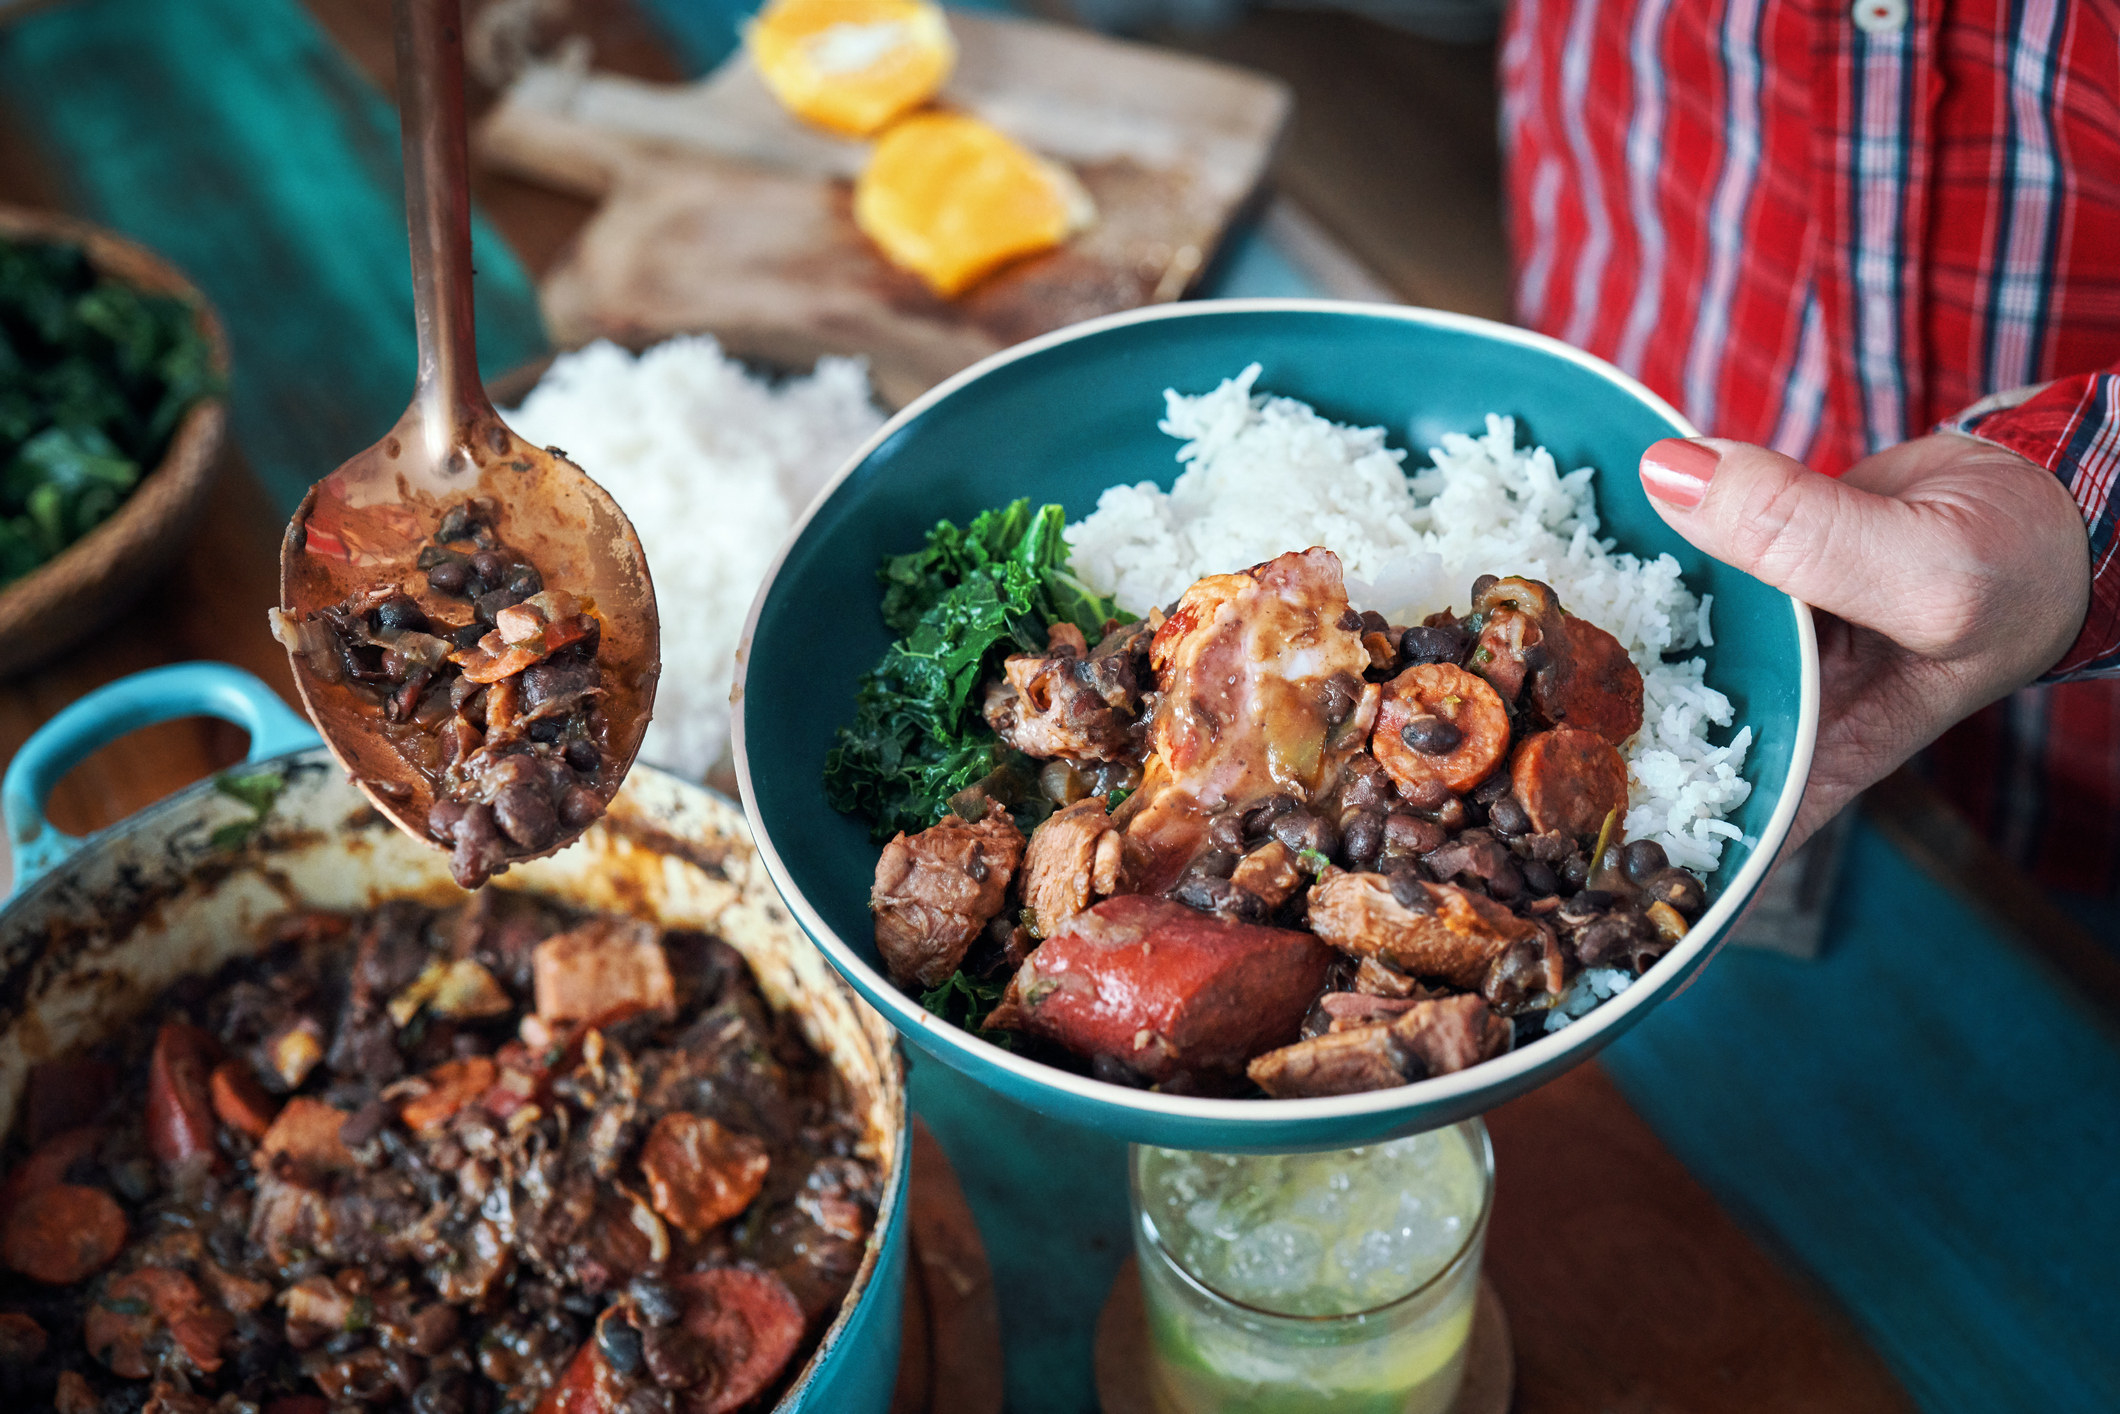 Brazilian black bean stew with sausage over rice.